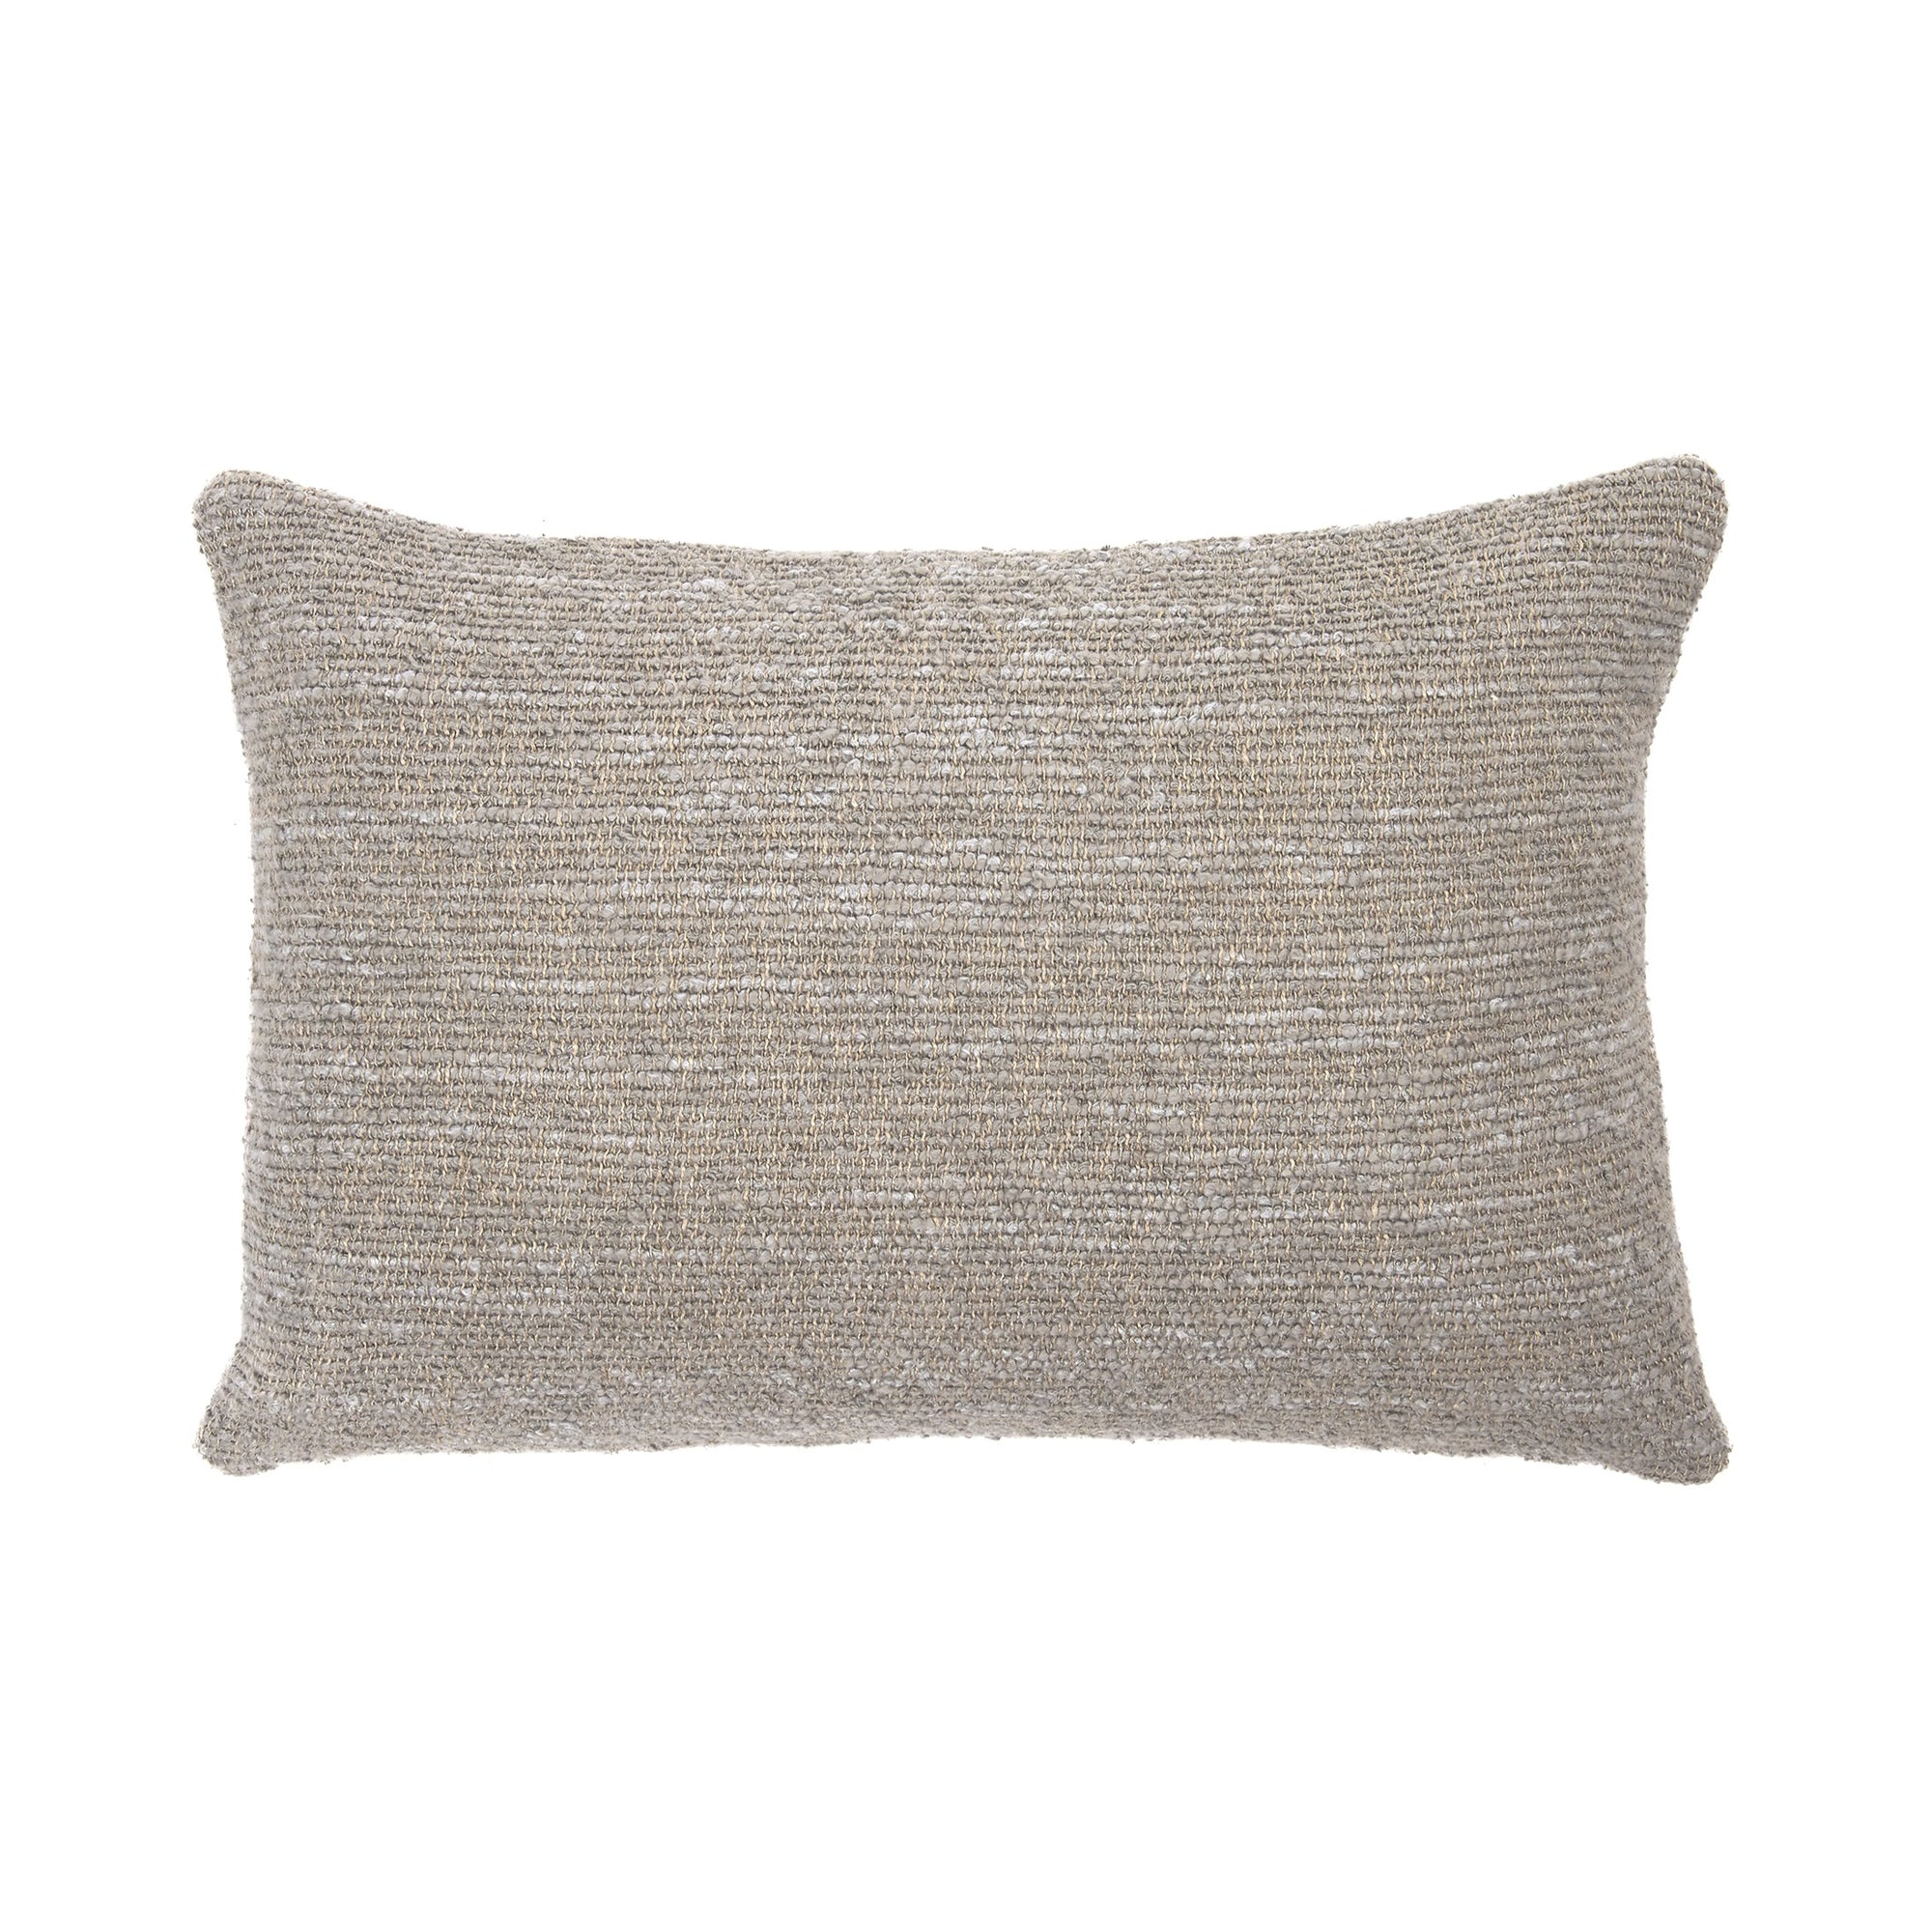 Silver Nomad cushion